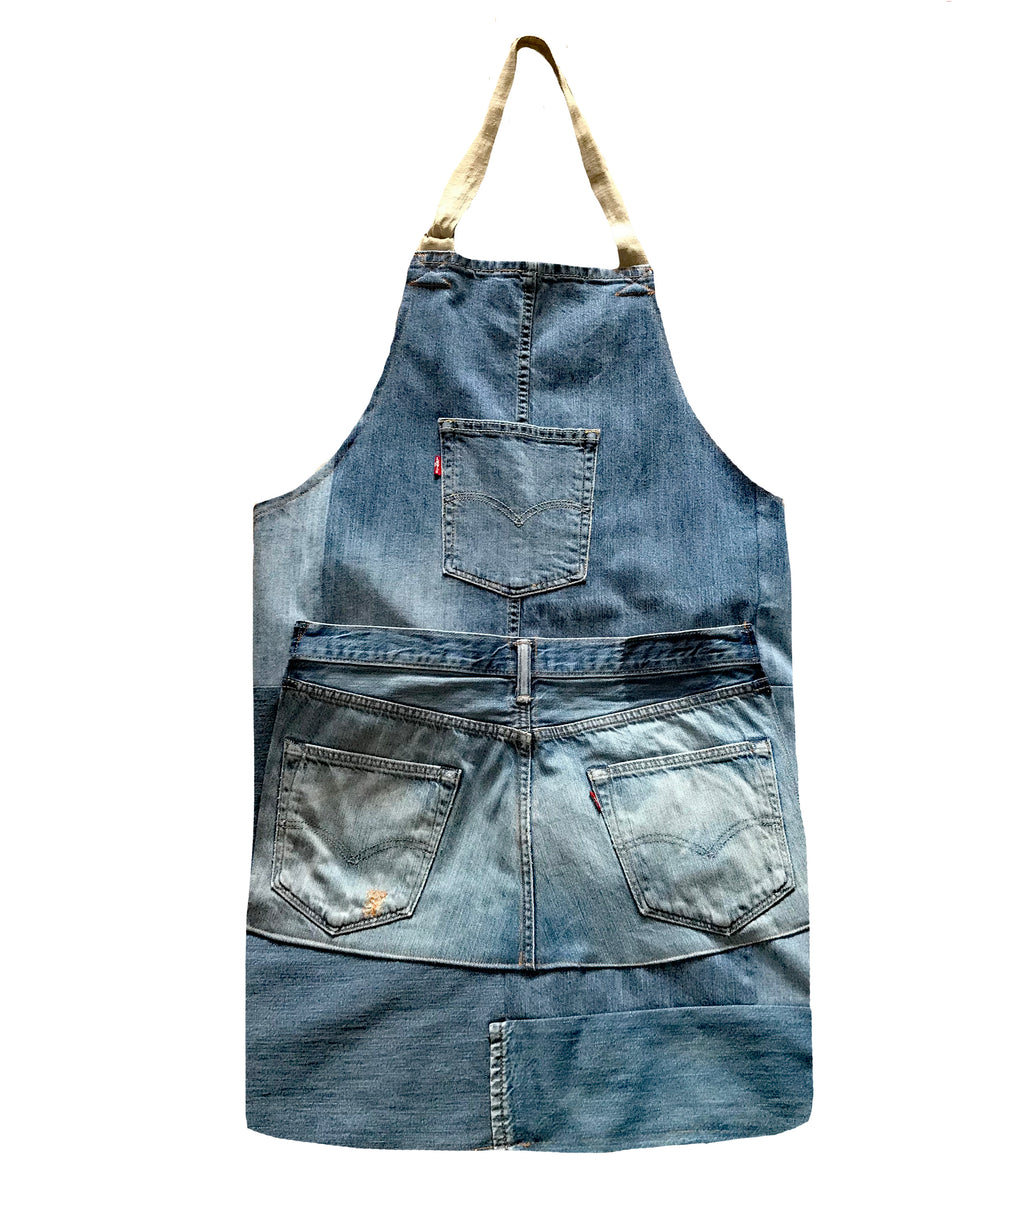 Artisan Aprons made from Re-Worked, Vintage Levis Jeans